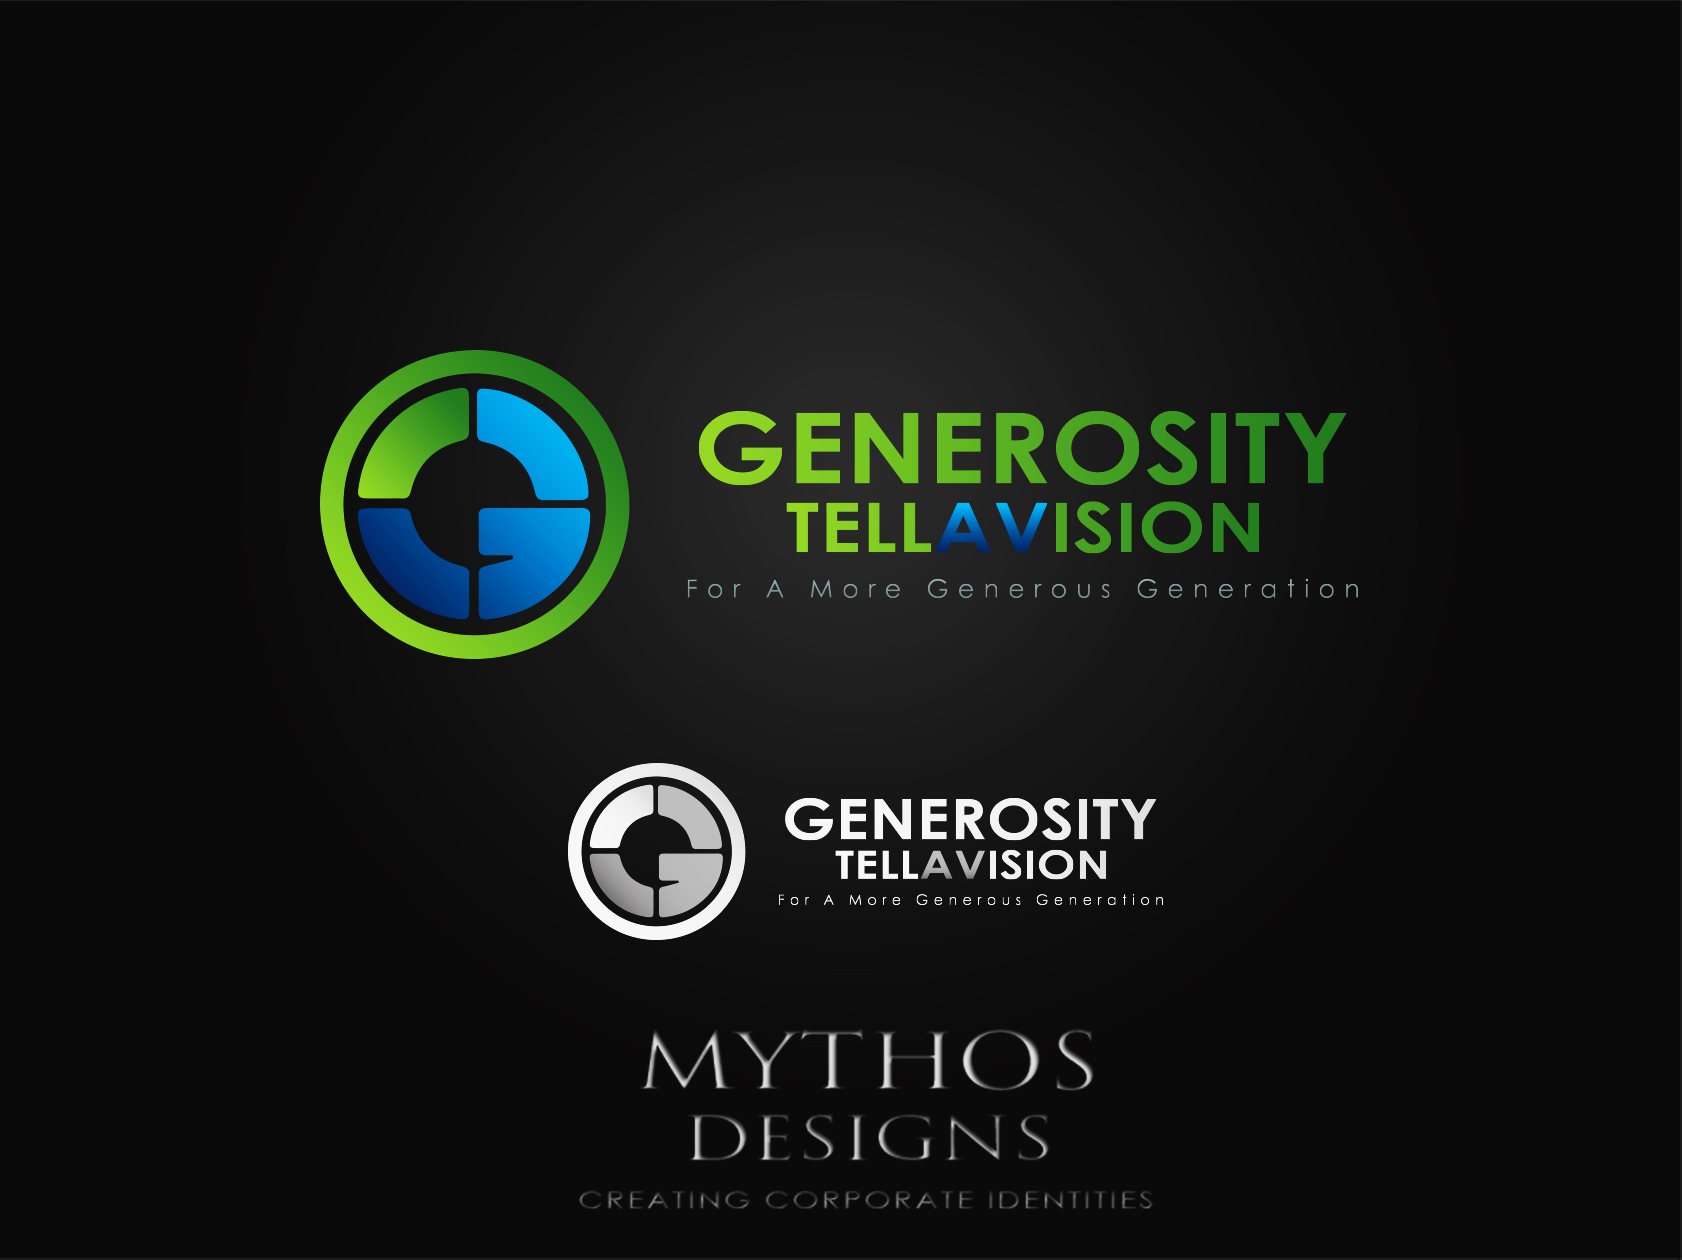 Logo Design by Mythos Designs - Entry No. 81 in the Logo Design Contest Artistic Logo Design for Generosity TellAVision.